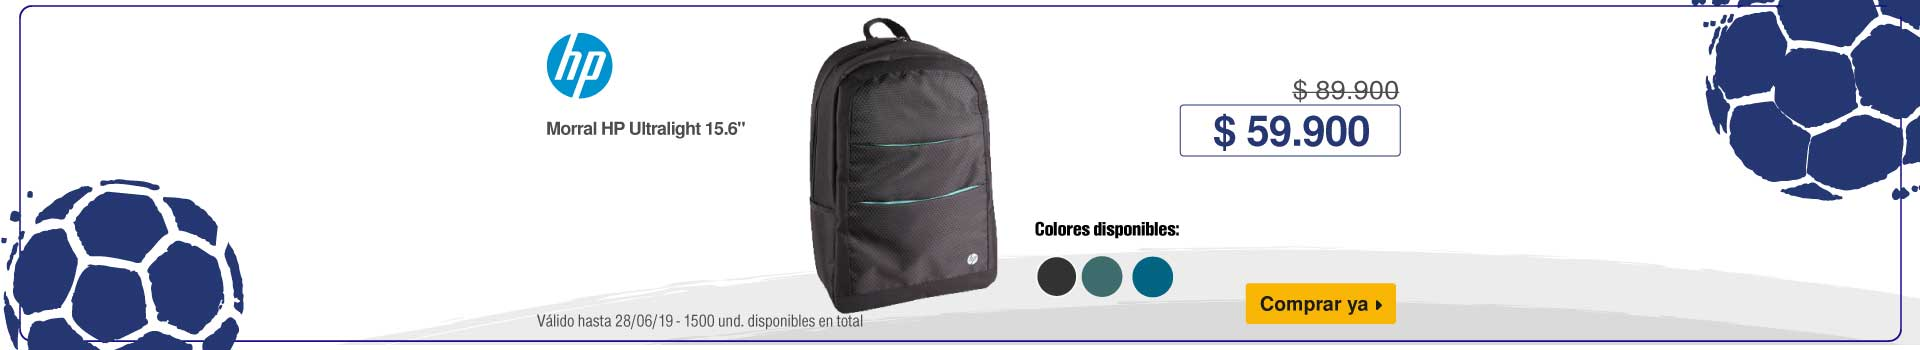 AK-KT-BCAT-2-HP-MORRAL_ULTRALIGHT15.6-JUNIO 22